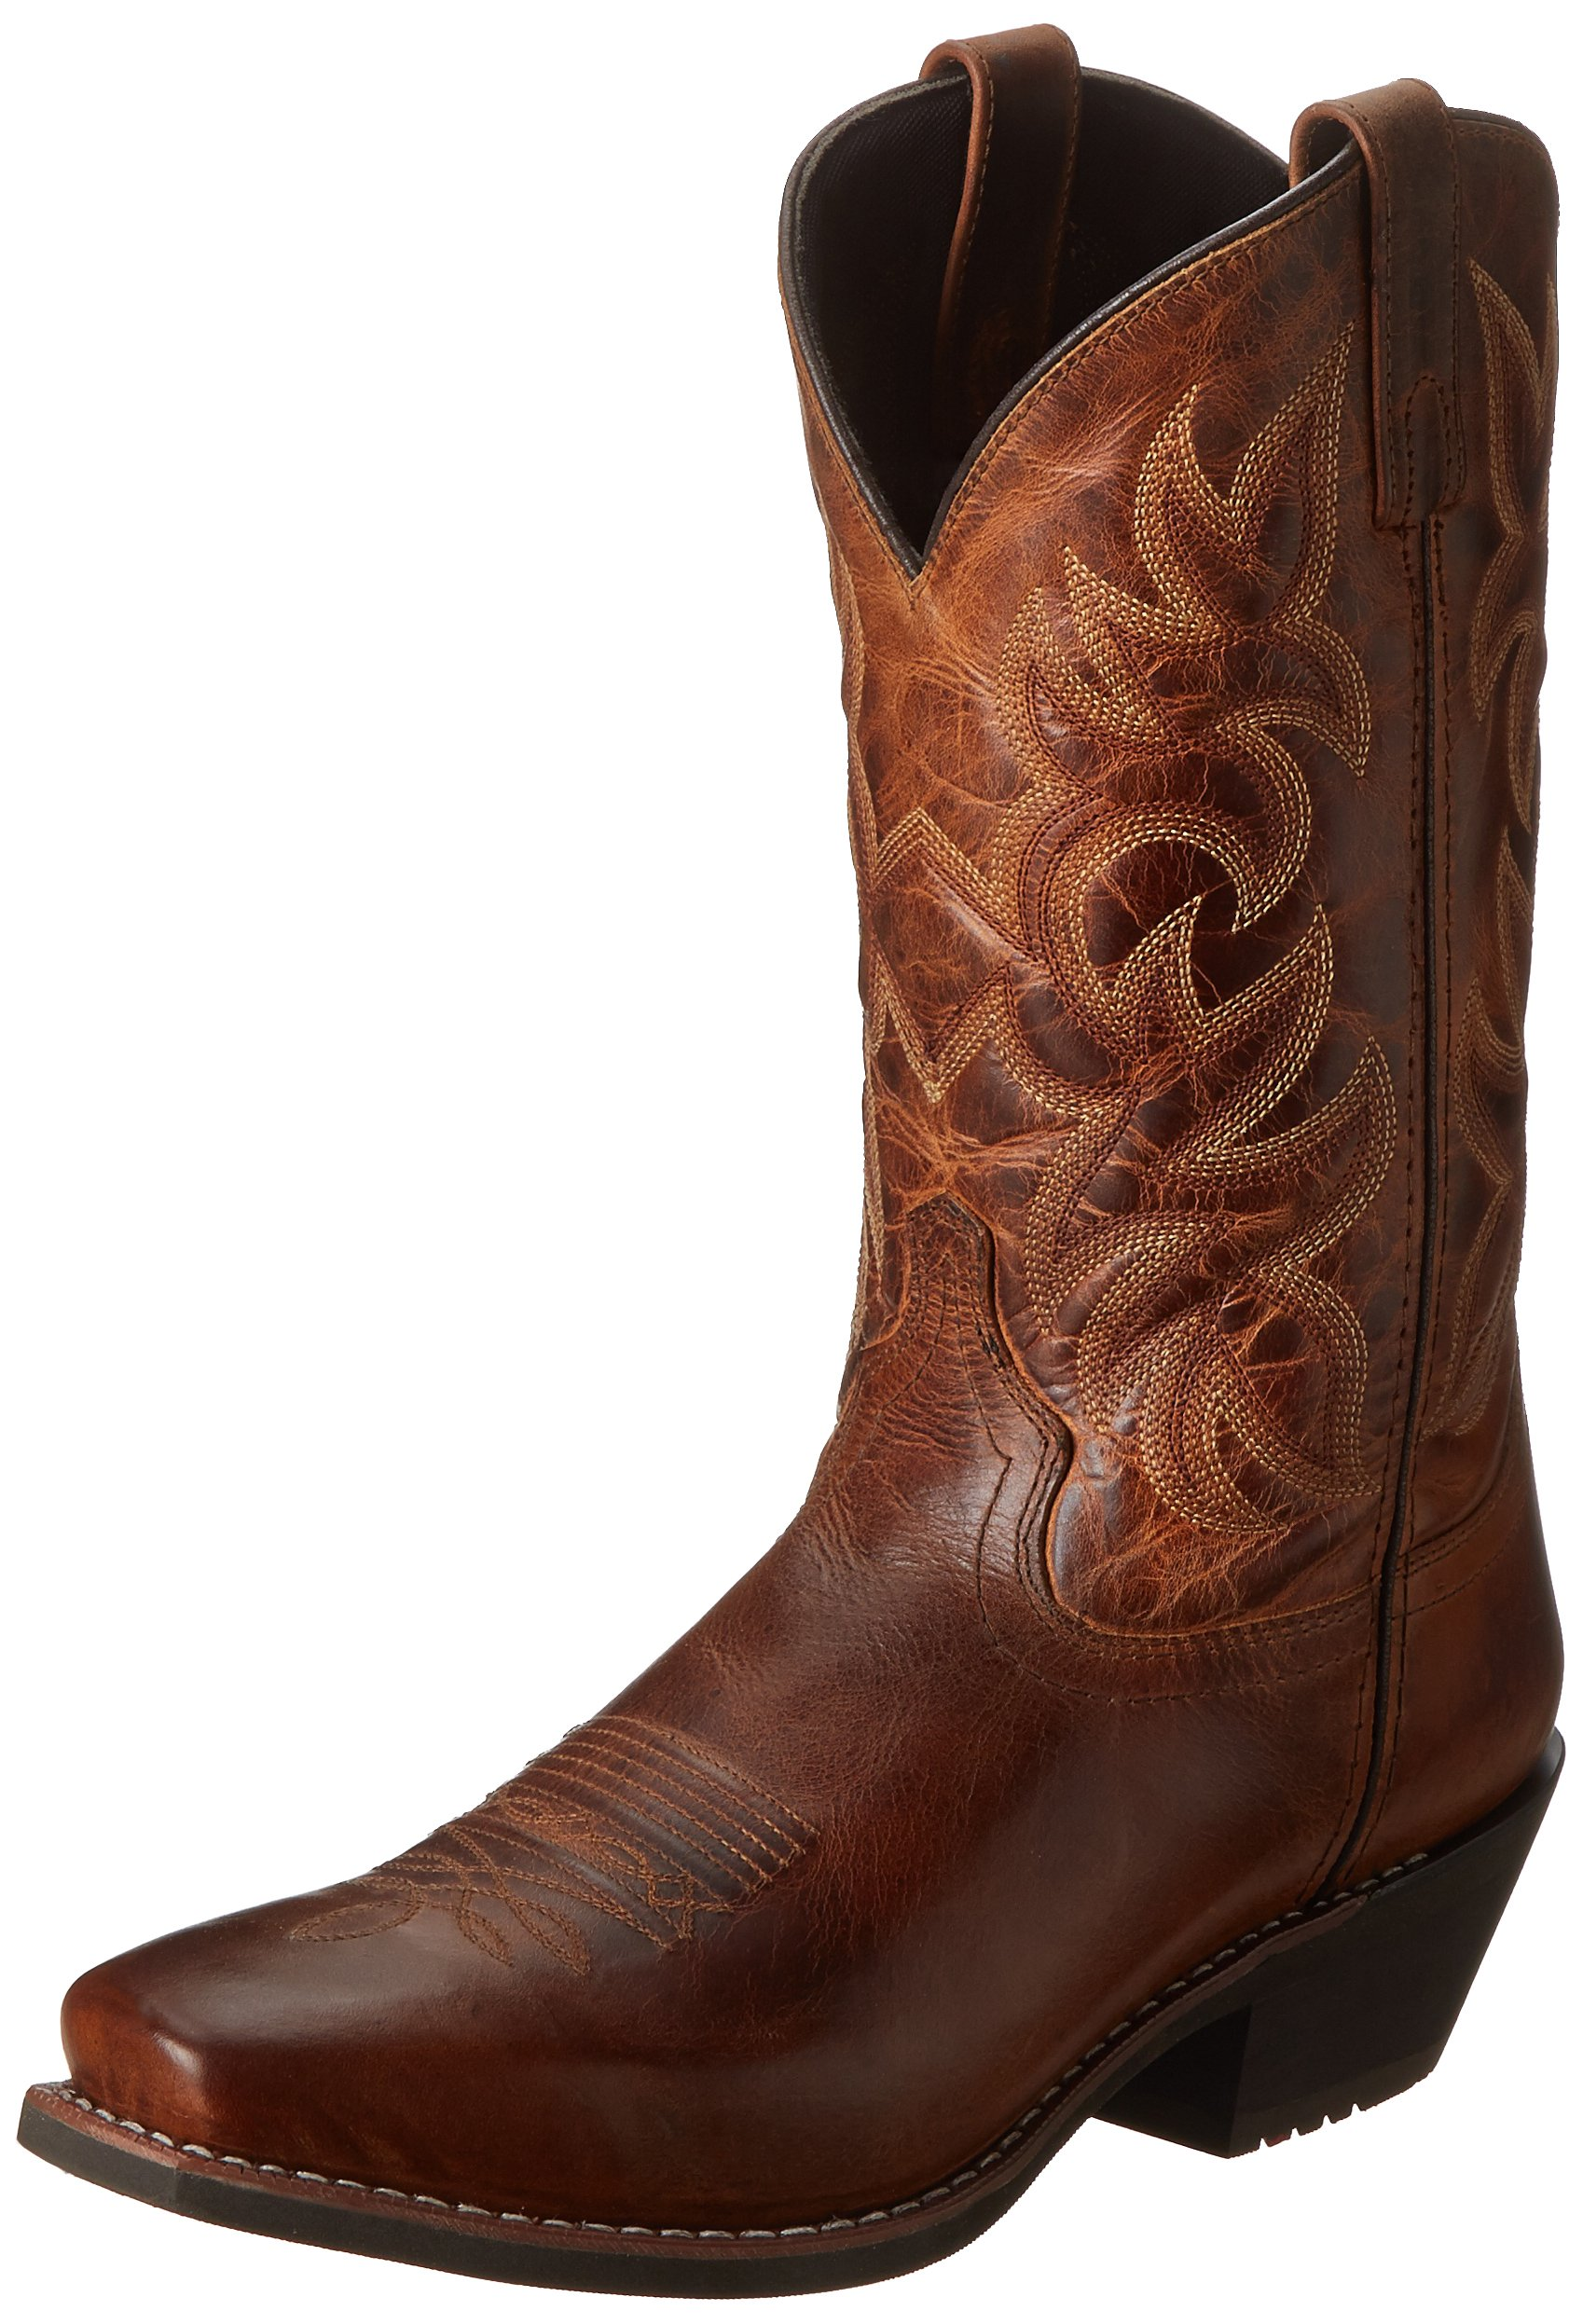 Laredo Men's Breakout Western Boot,Rust,8 D US